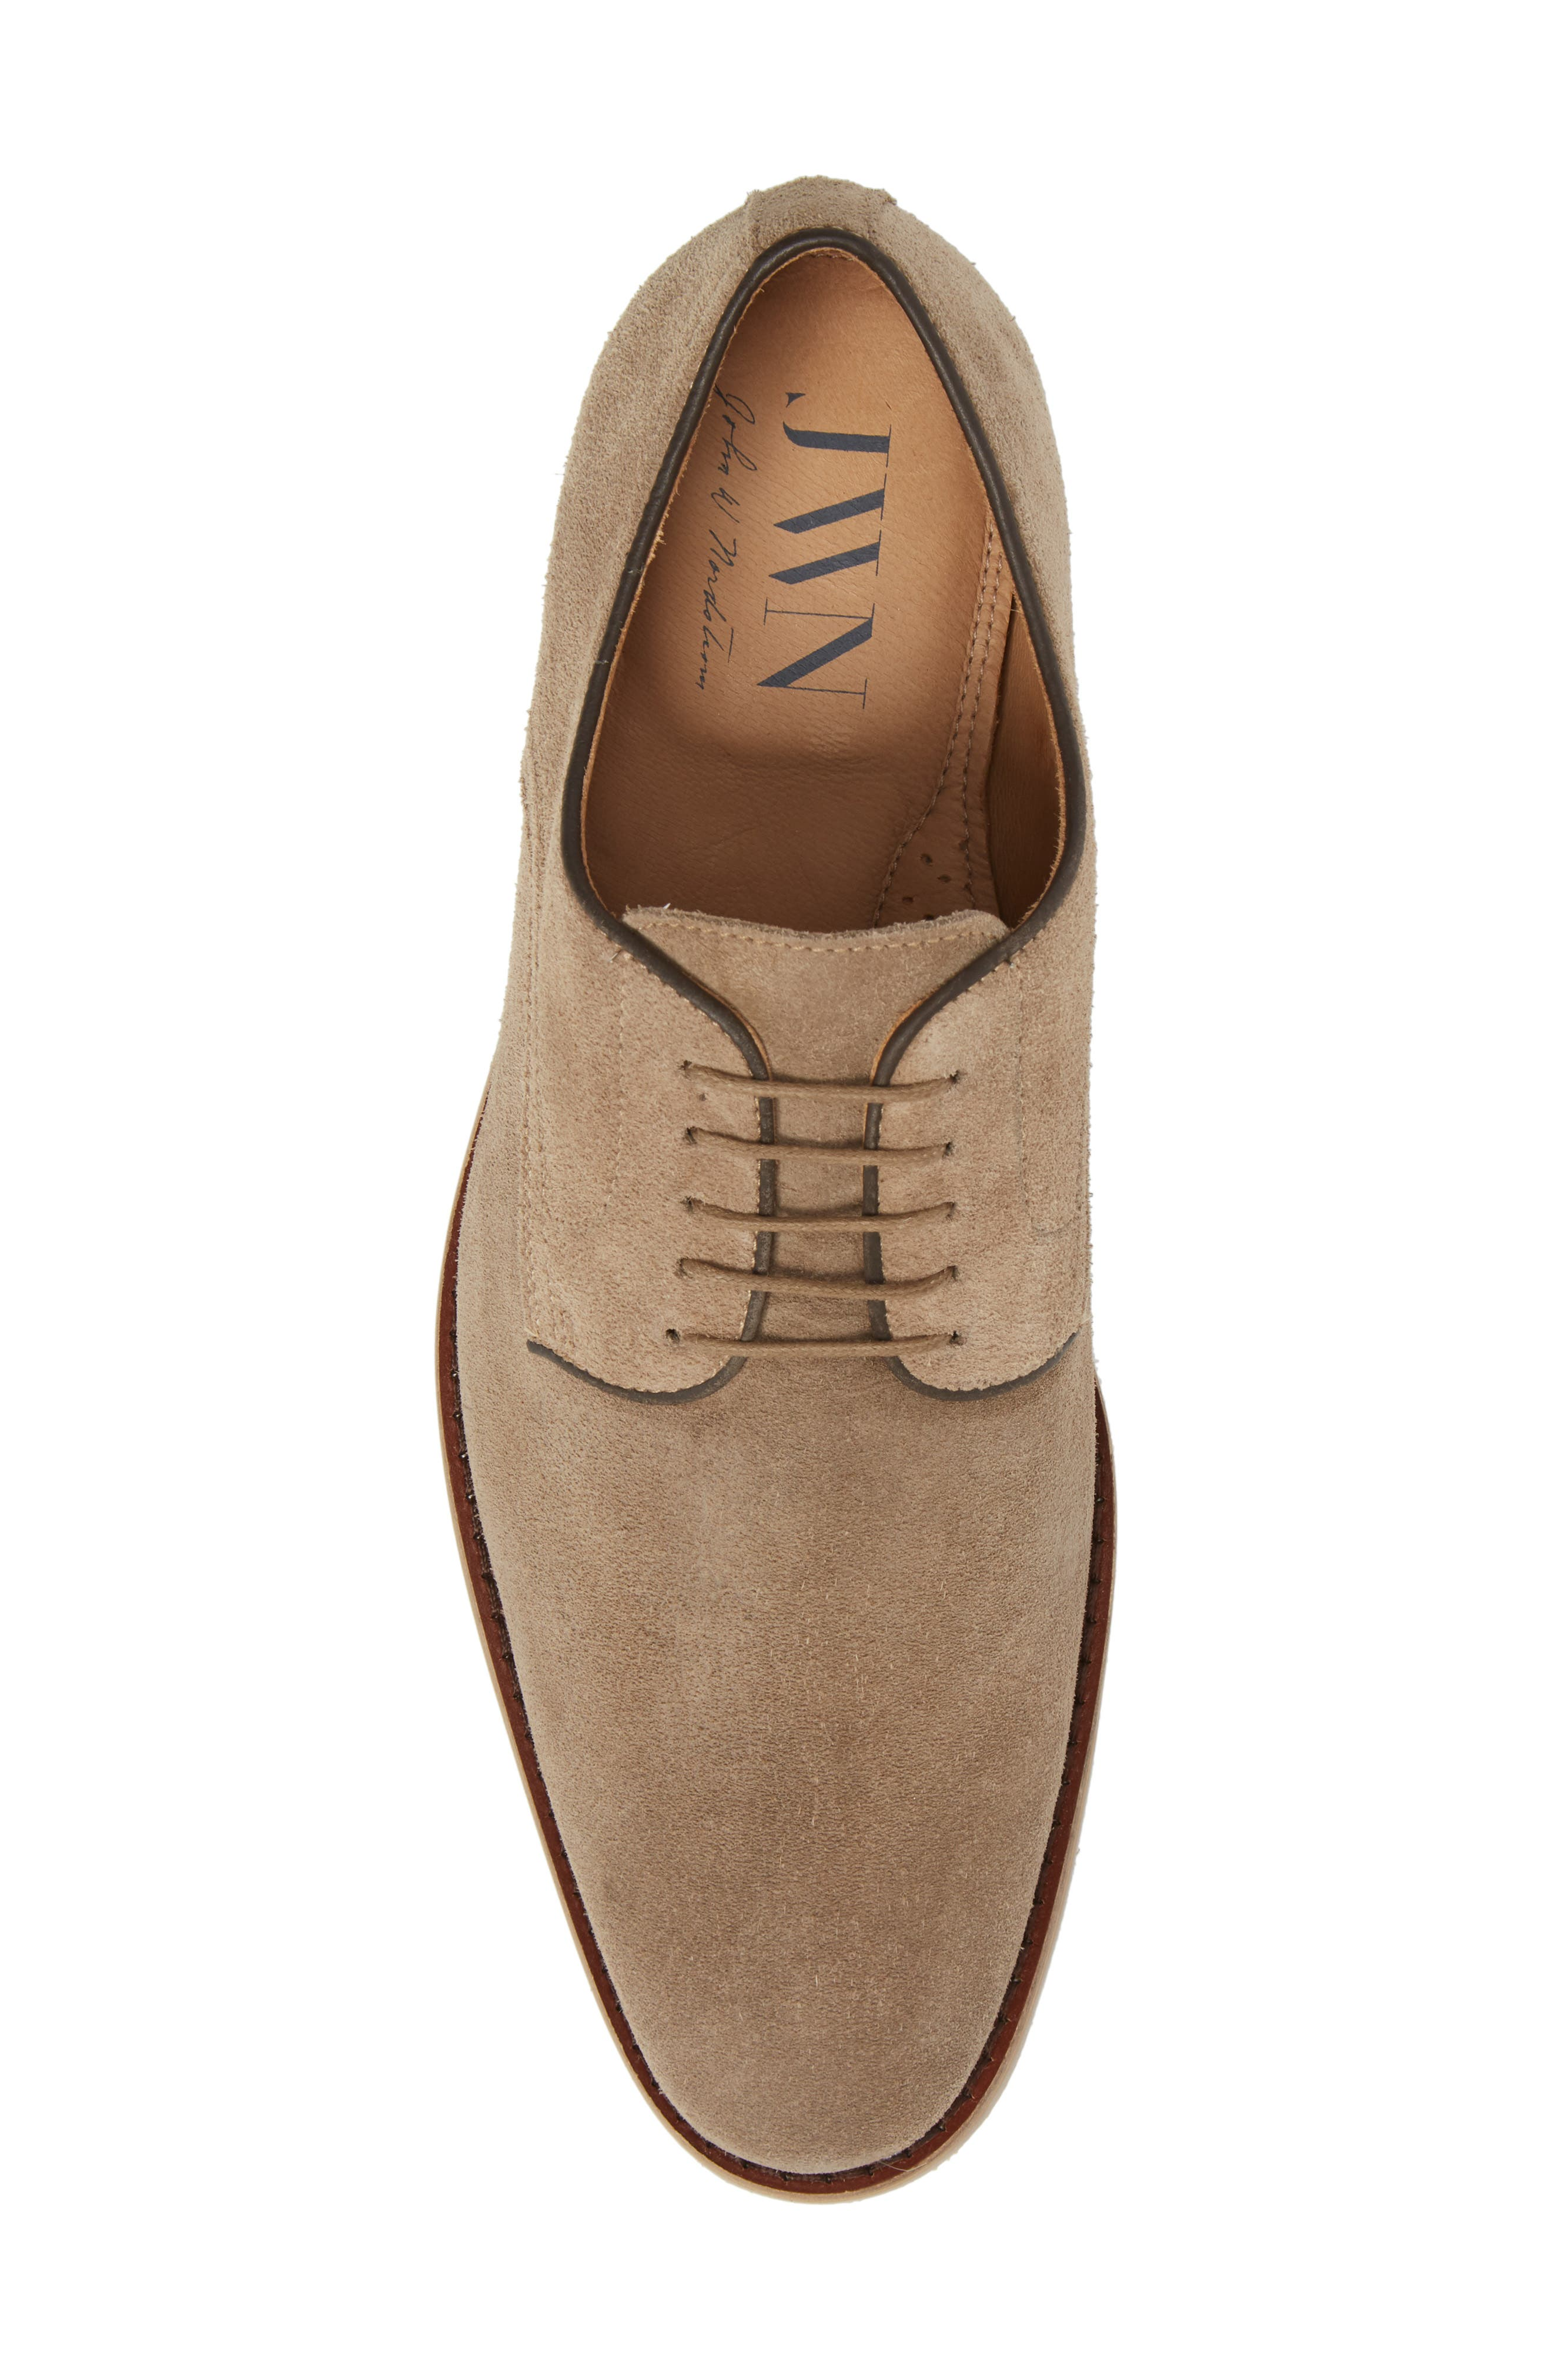 Santino Plain Toe Derby,                             Alternate thumbnail 5, color,                             Taupe Suede